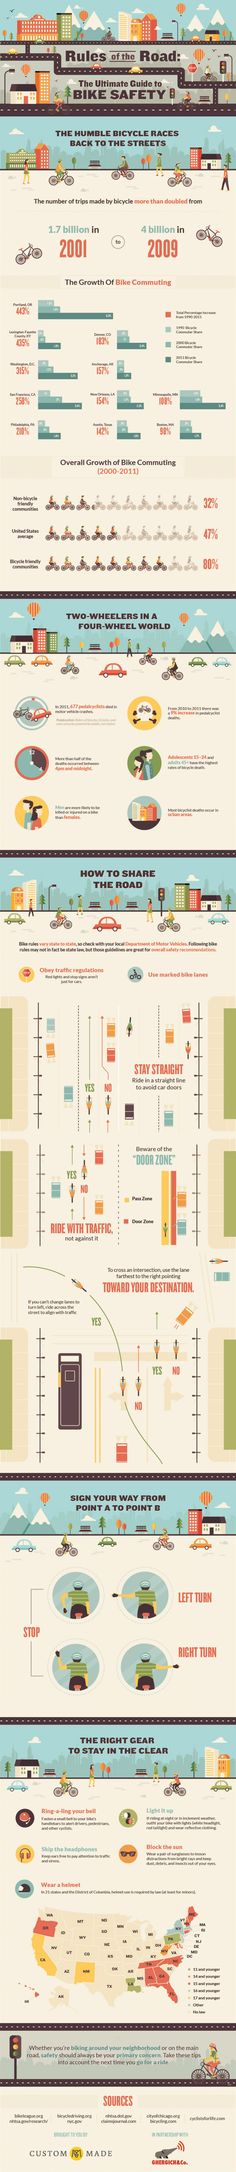 How to Share the Road: The Ultimate Guide to Bike Safety Infographic